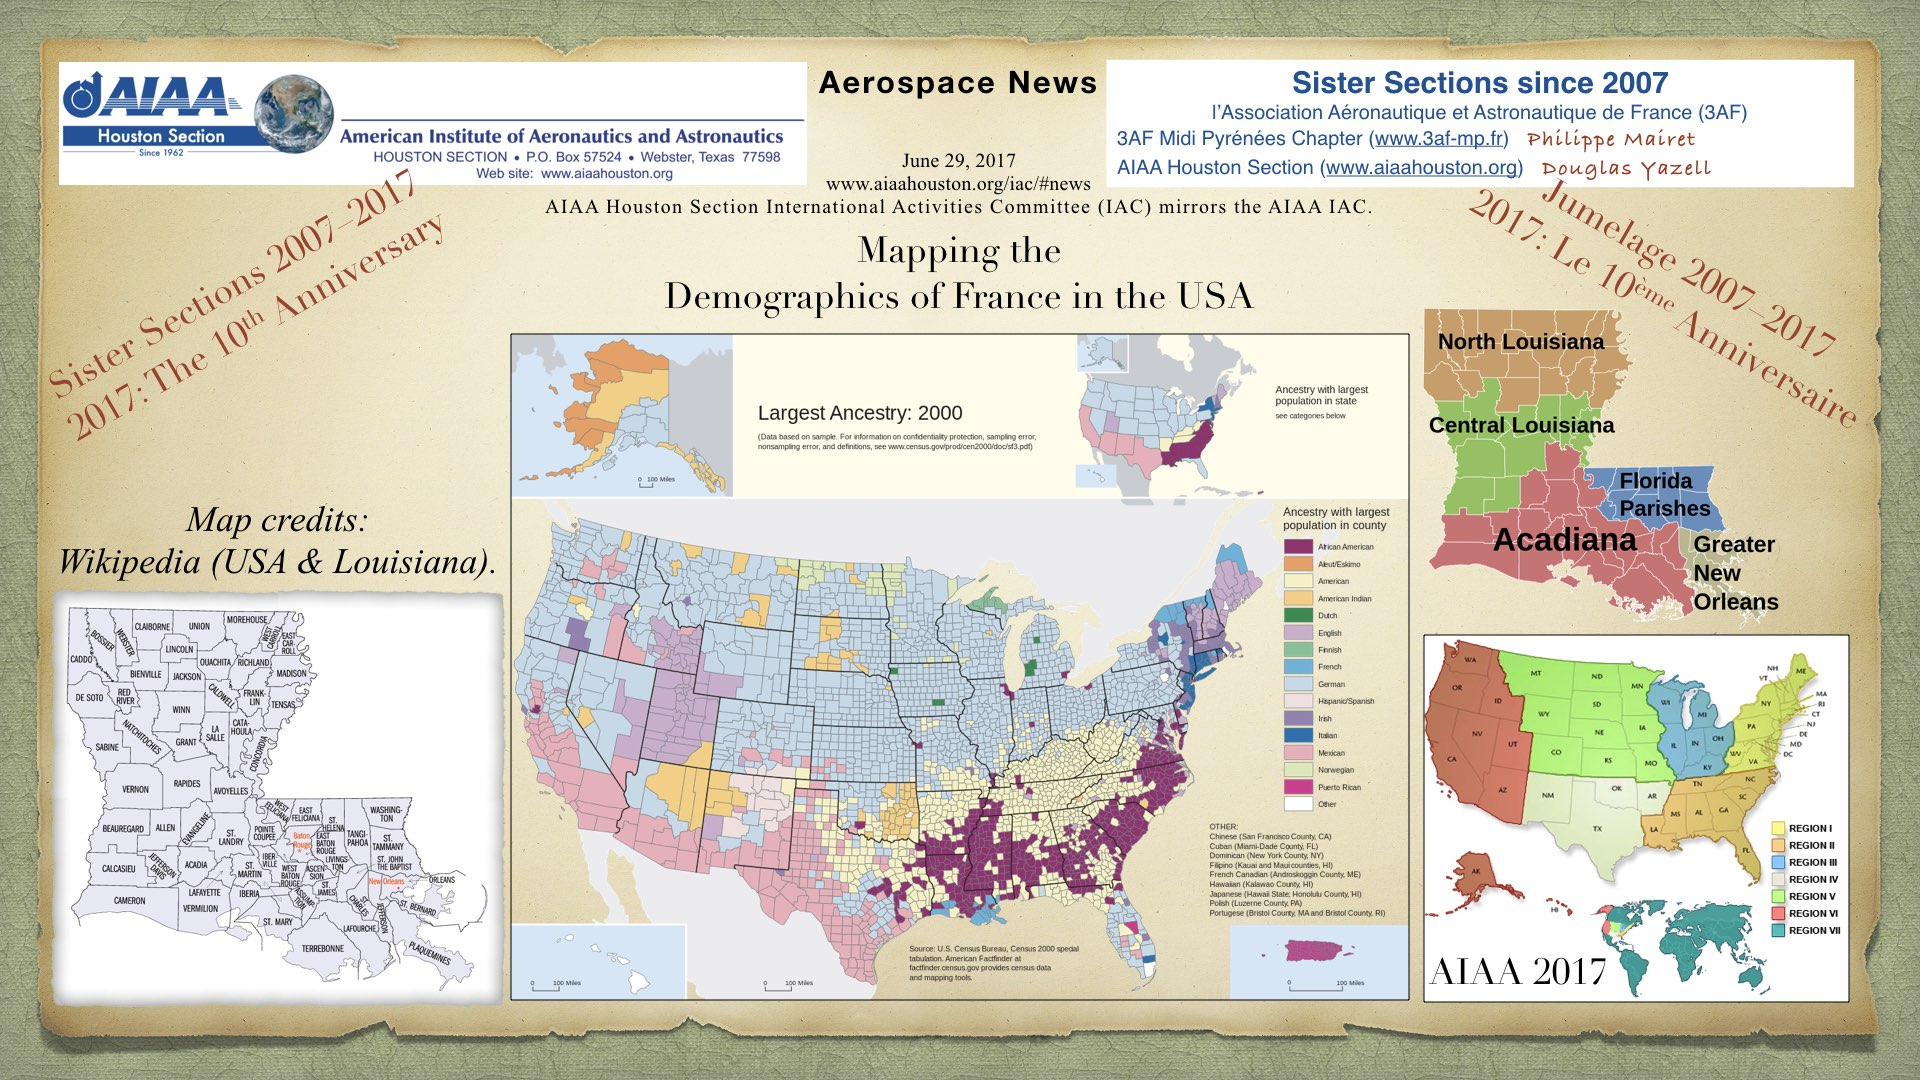 Above: Mapping the Demographics of France in the USA. (Click to zoom.)